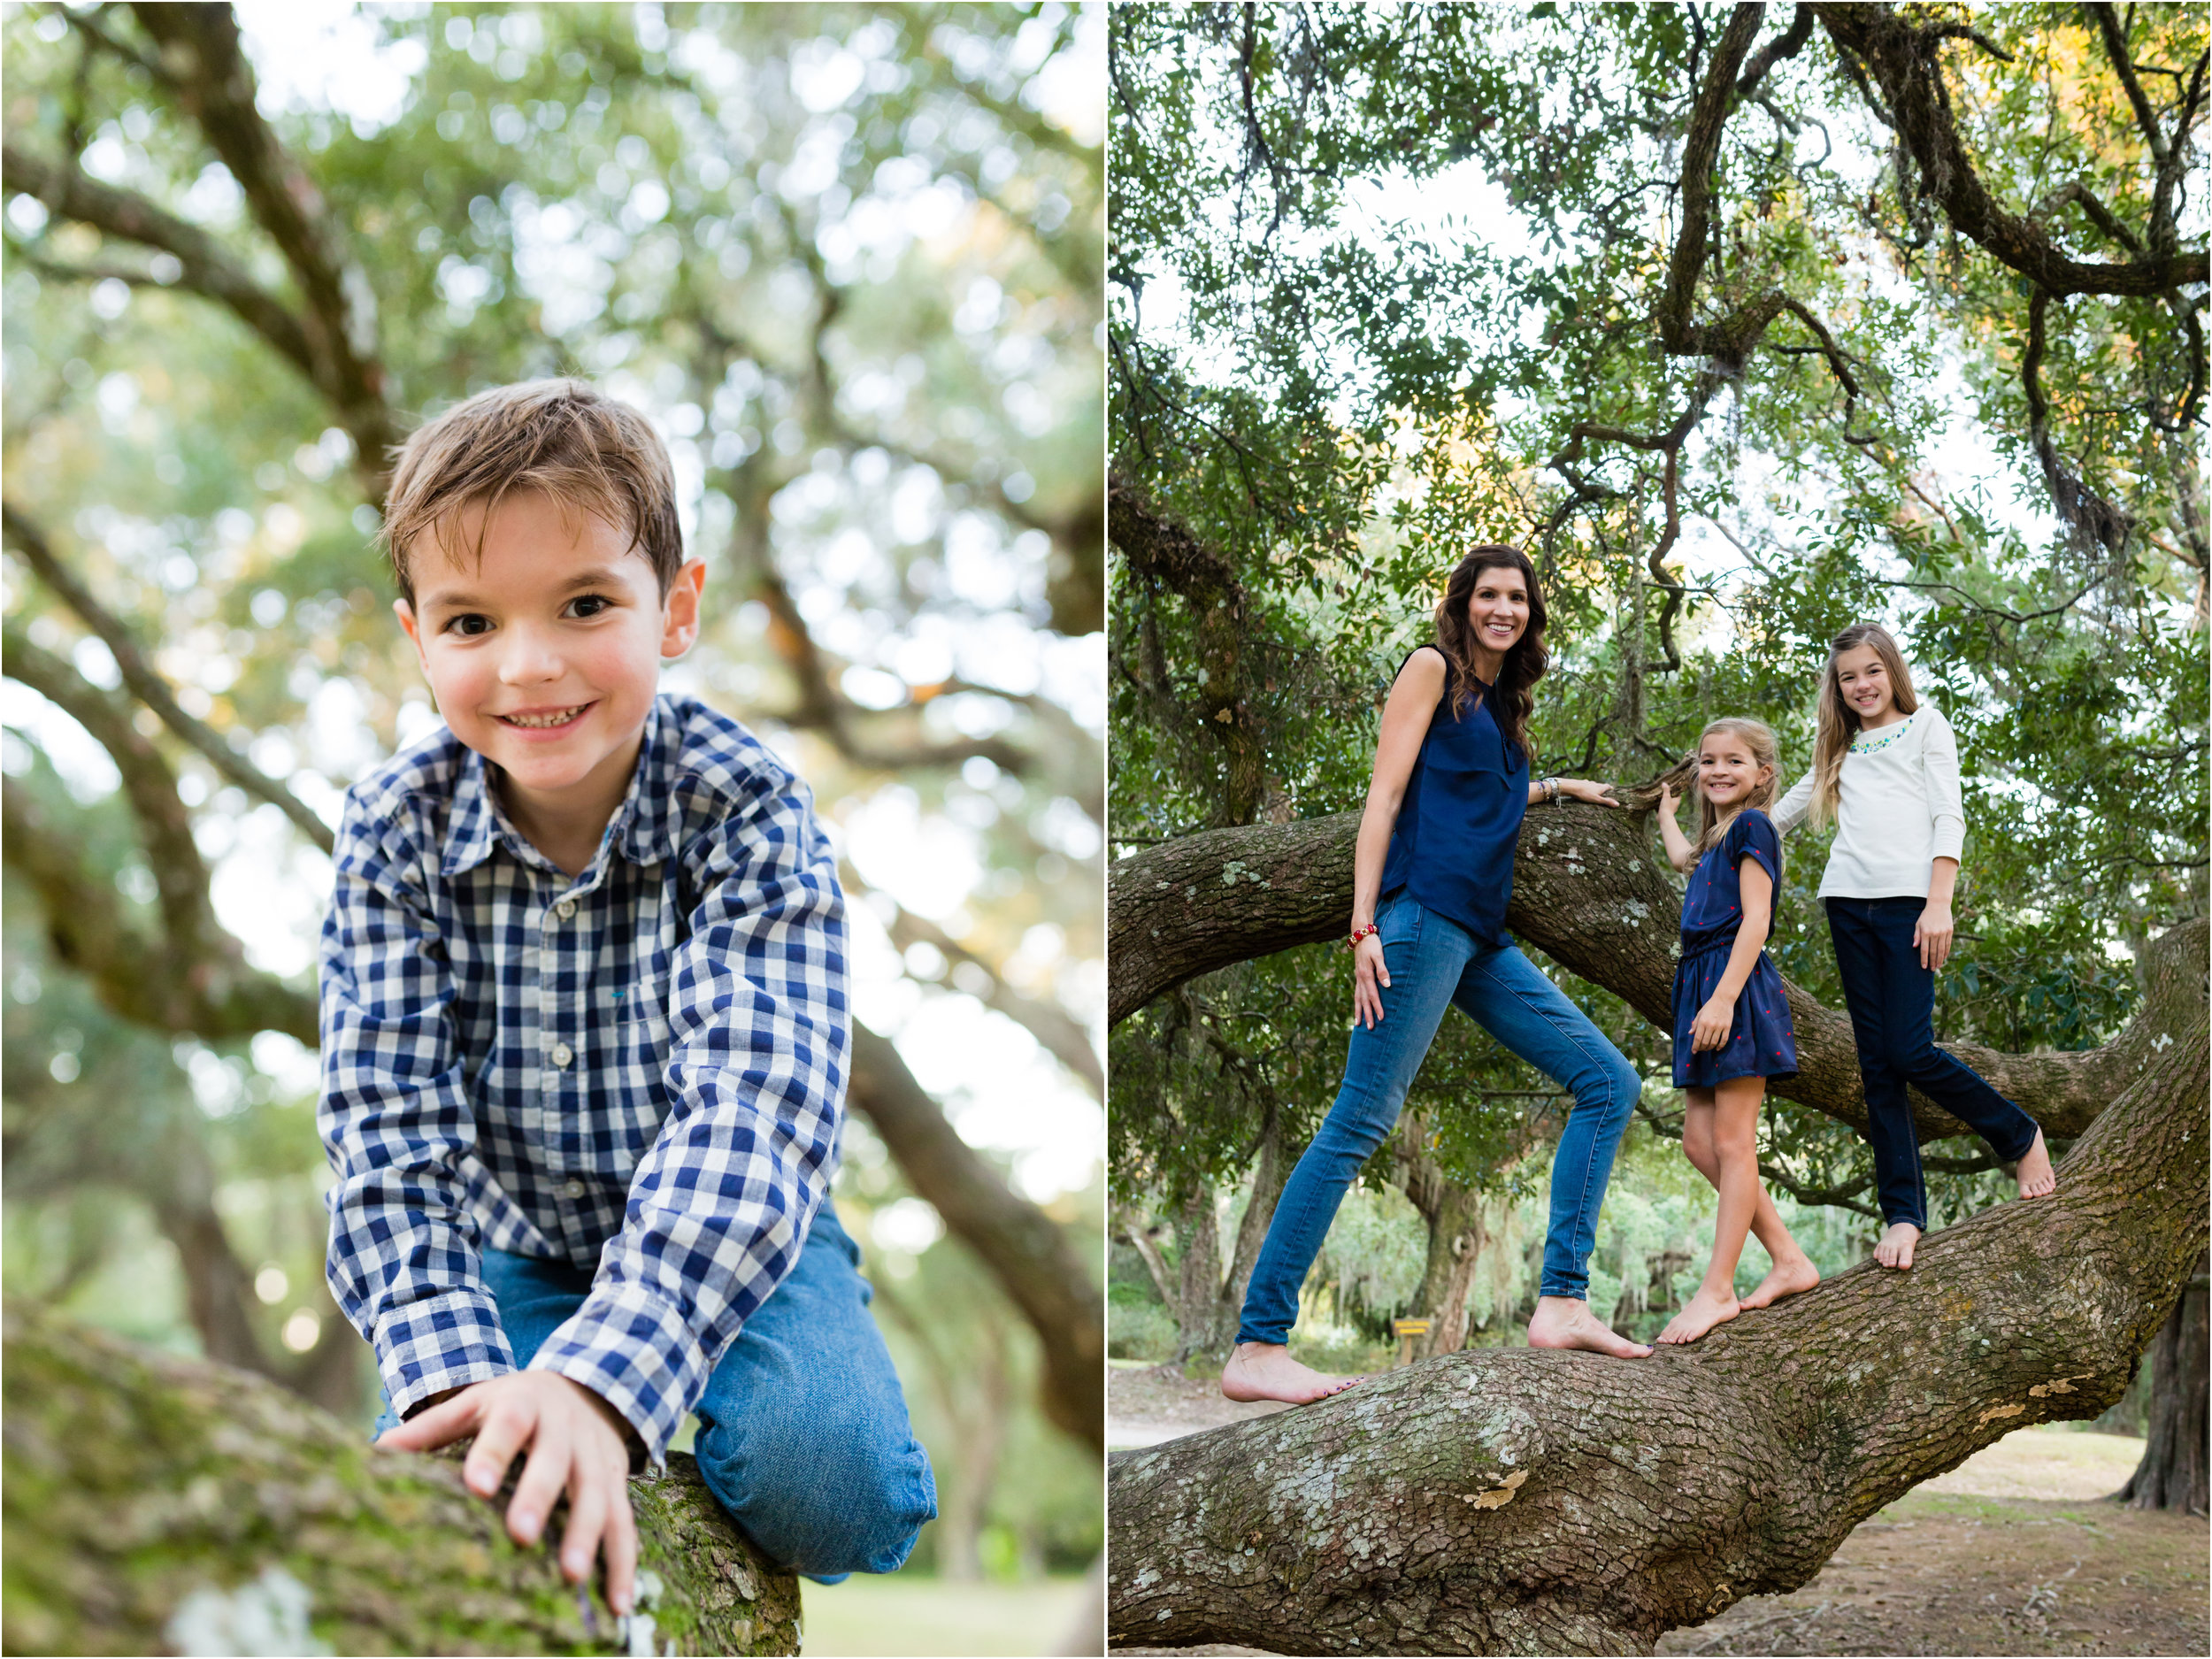 Family-child-portrait-lafayette-broussard-youngsville-photographer-f.jpg